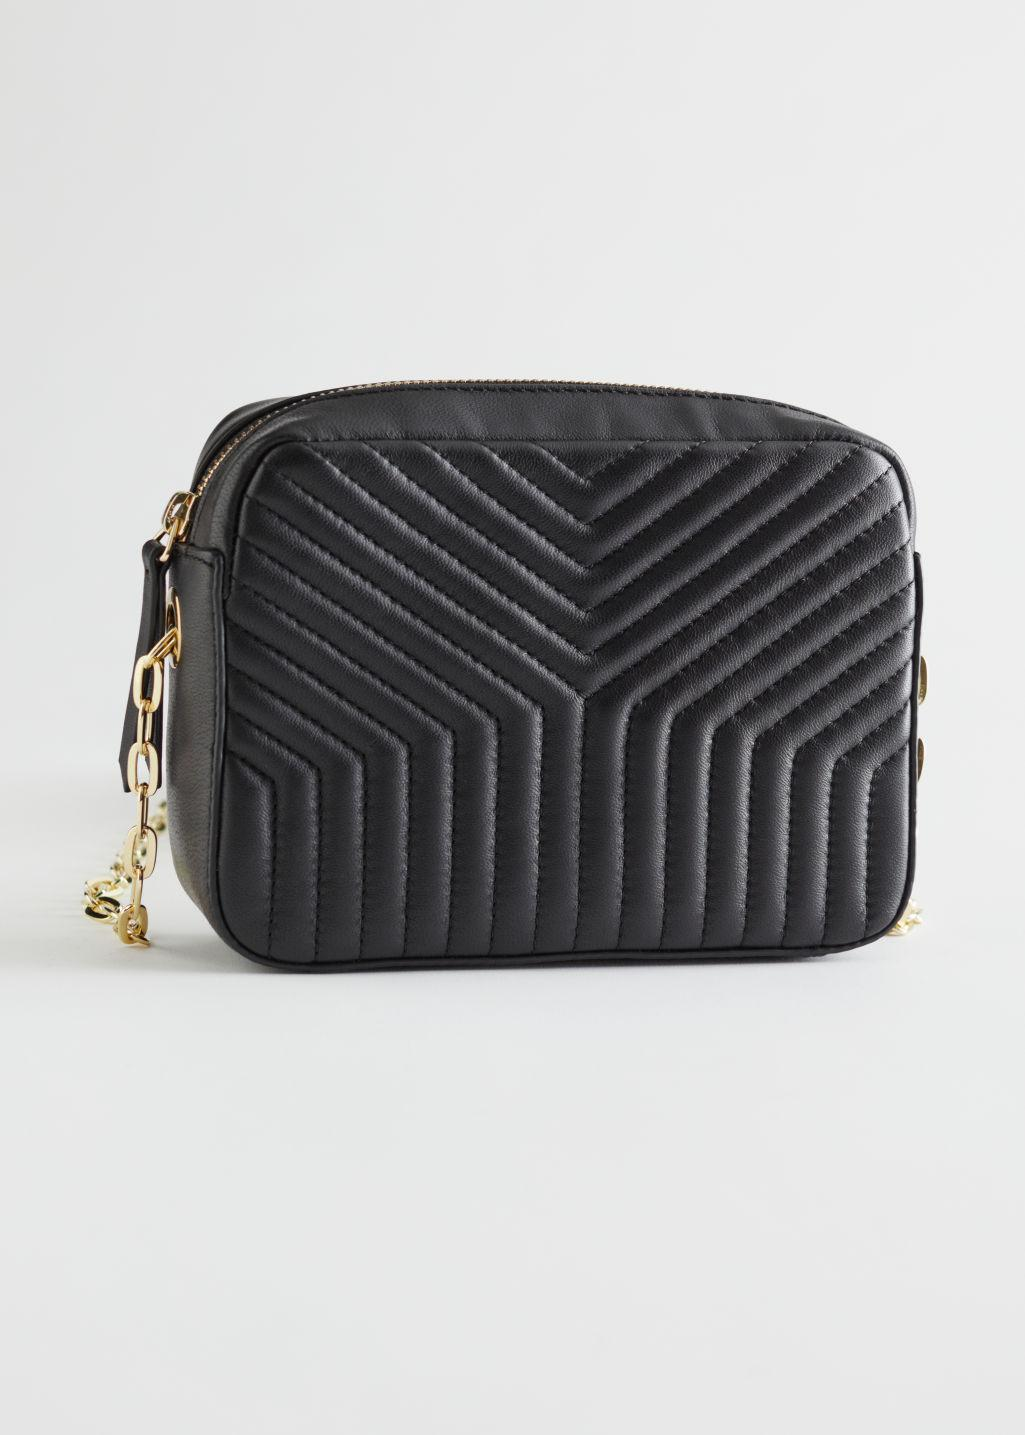 Chain Strap Embossed Leather Bag